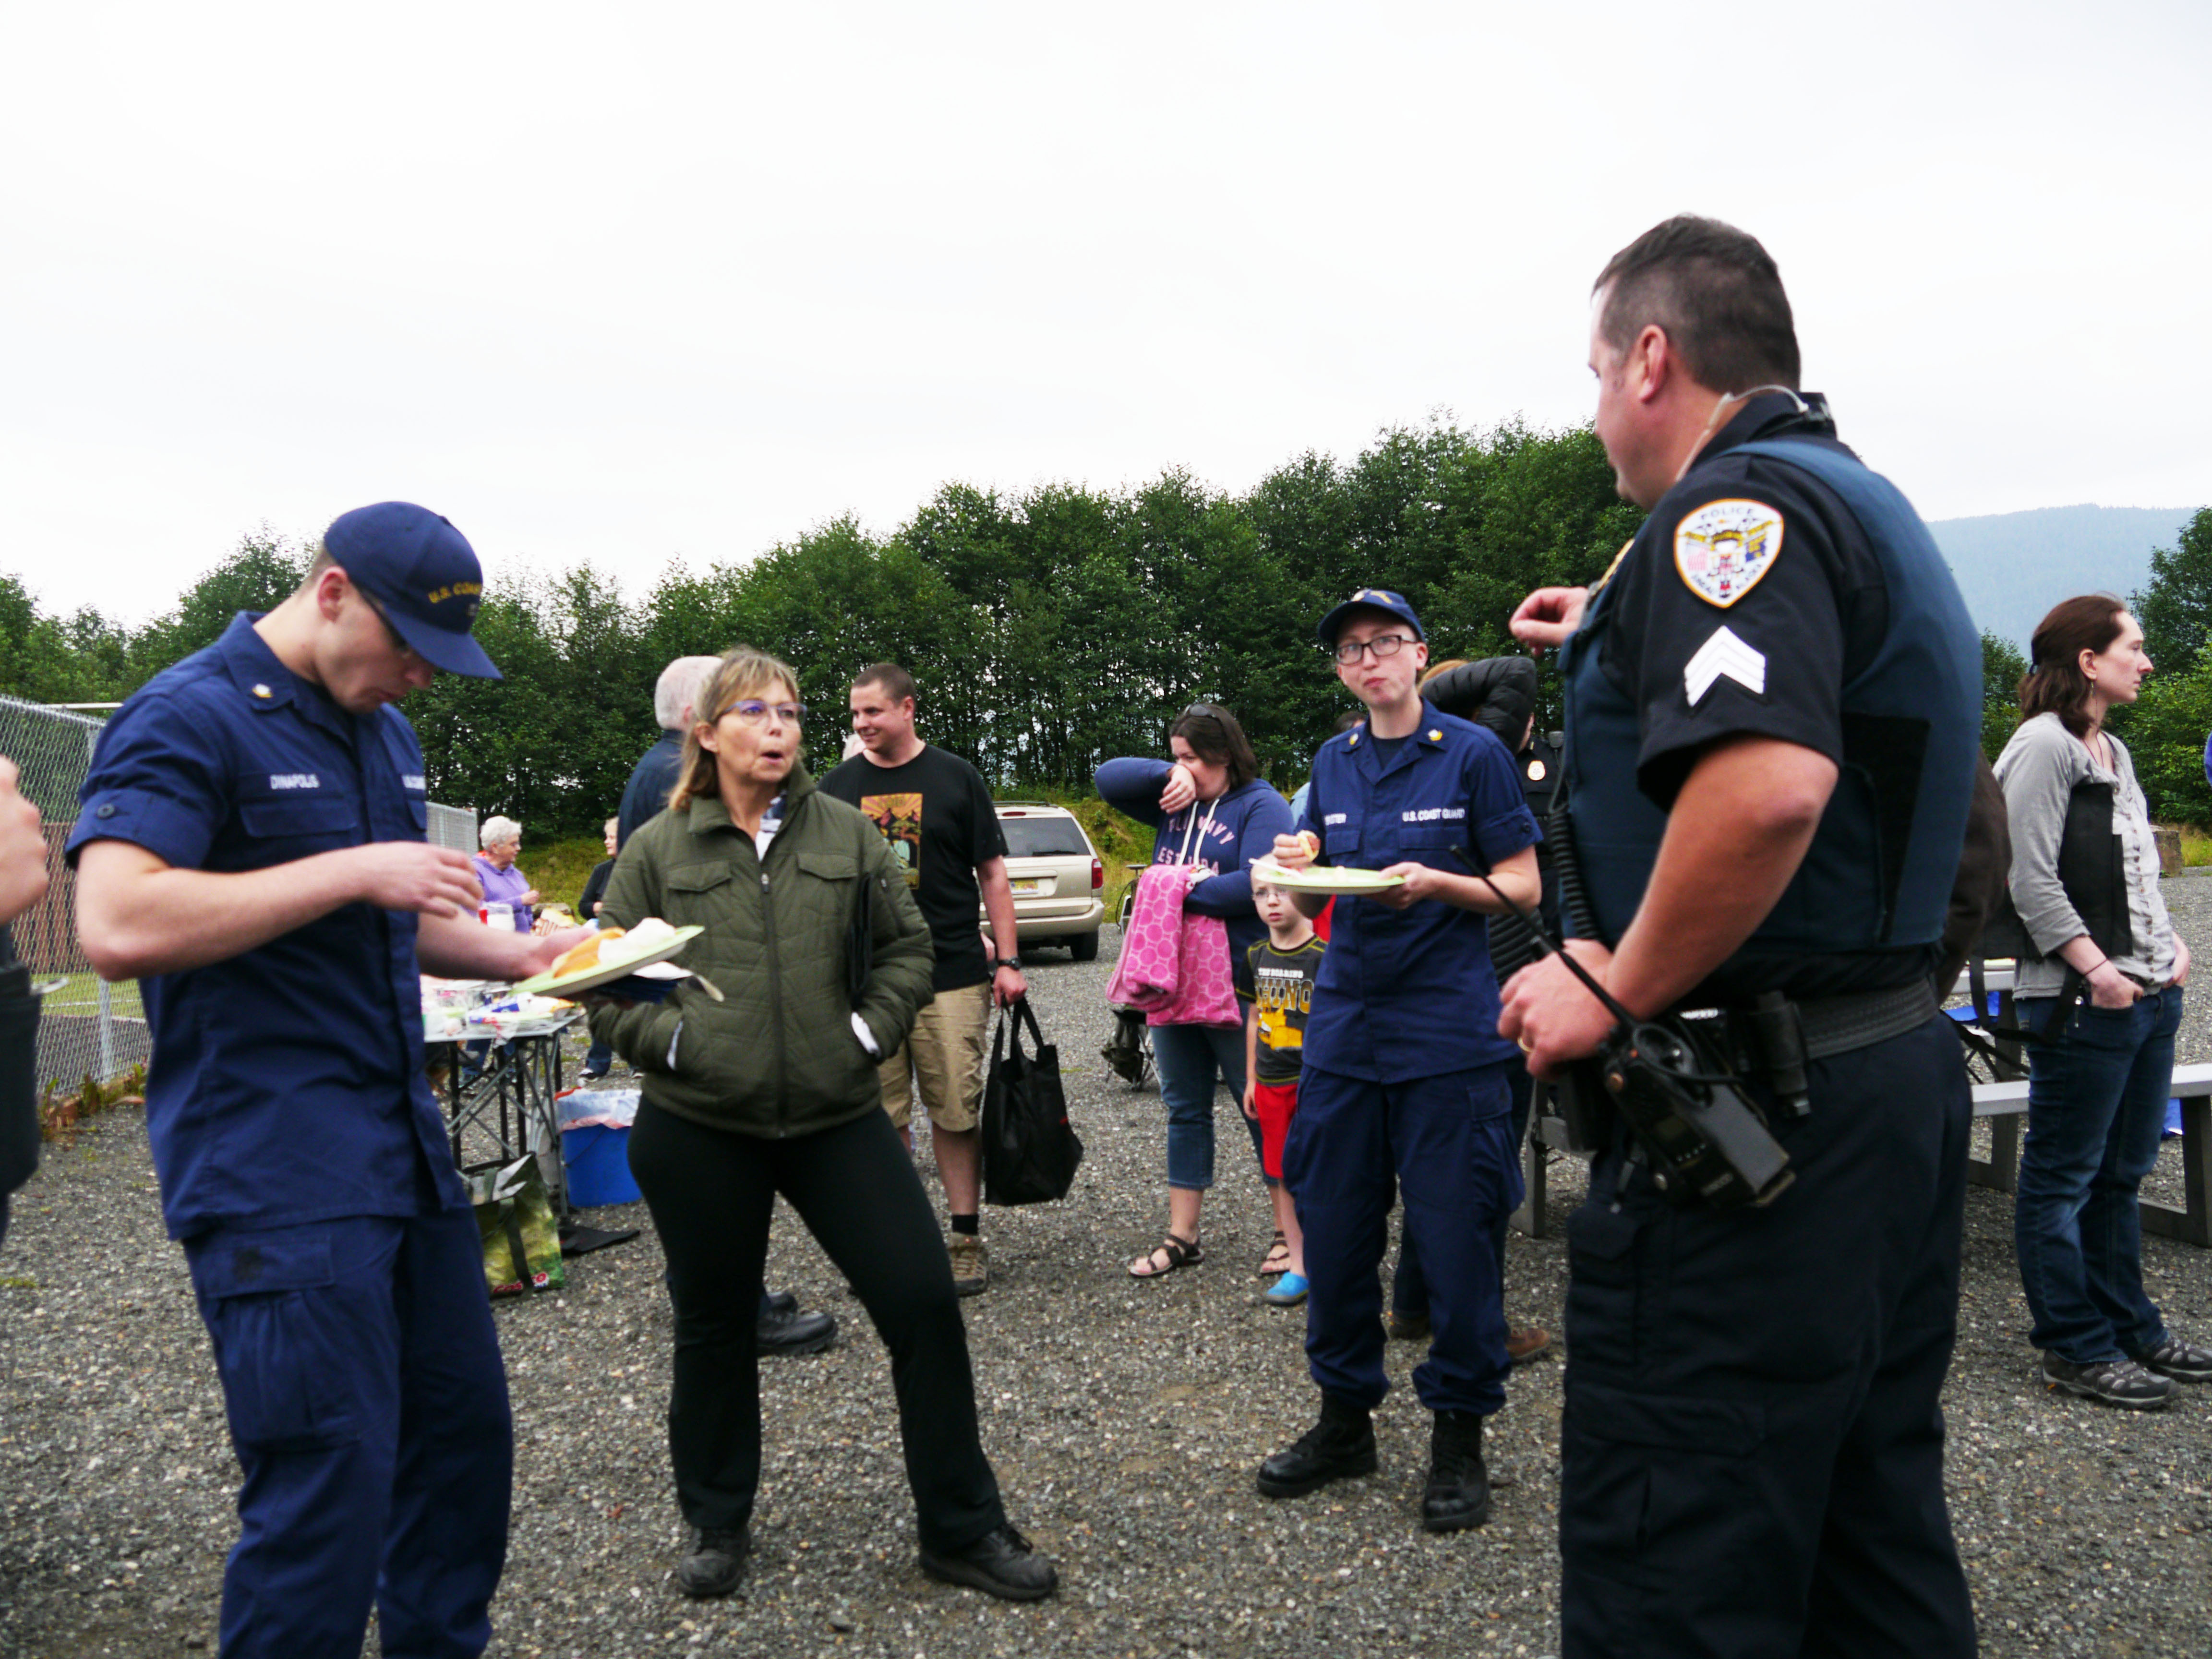 Juneau Police Department Sgt. Chris Gifford speaks with a two Coast Guard members and a community member during National Night Out, Aug. 2, 2016. (Photo by Lakeidra Chavis/ KTOO)